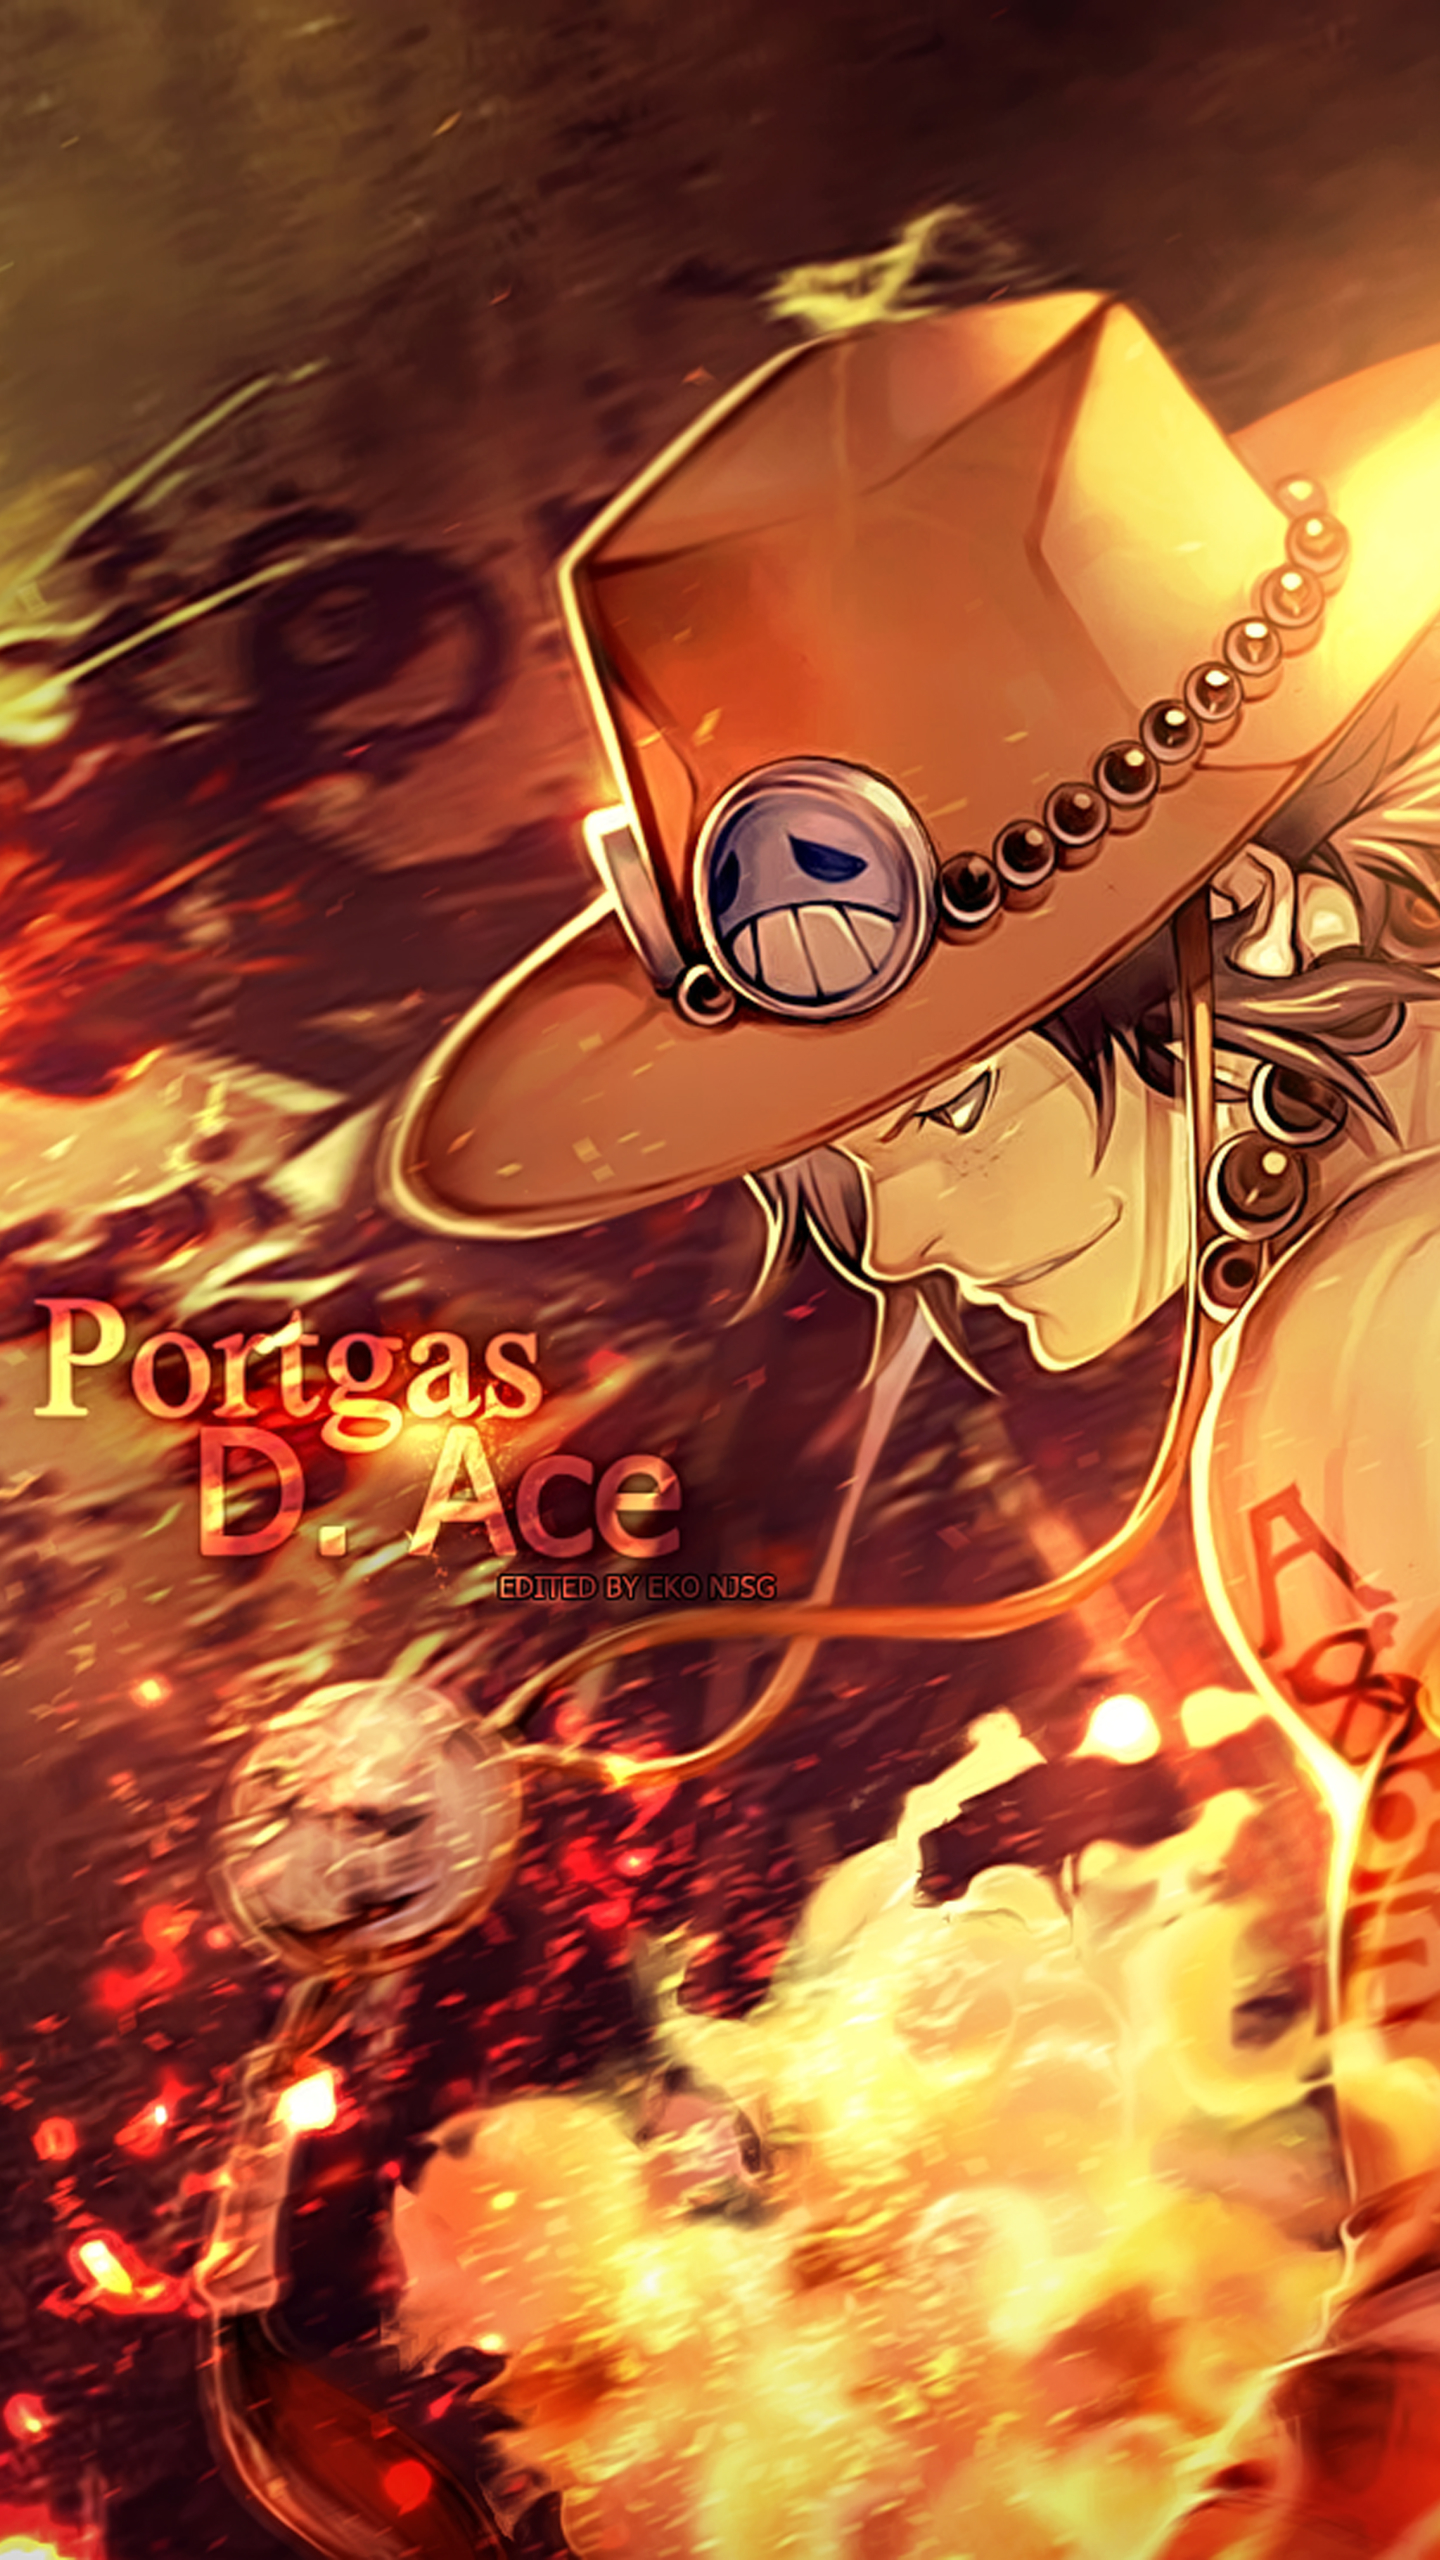 Anime One Piece 1440x2560 Wallpaper Id 693549 Mobile Abyss